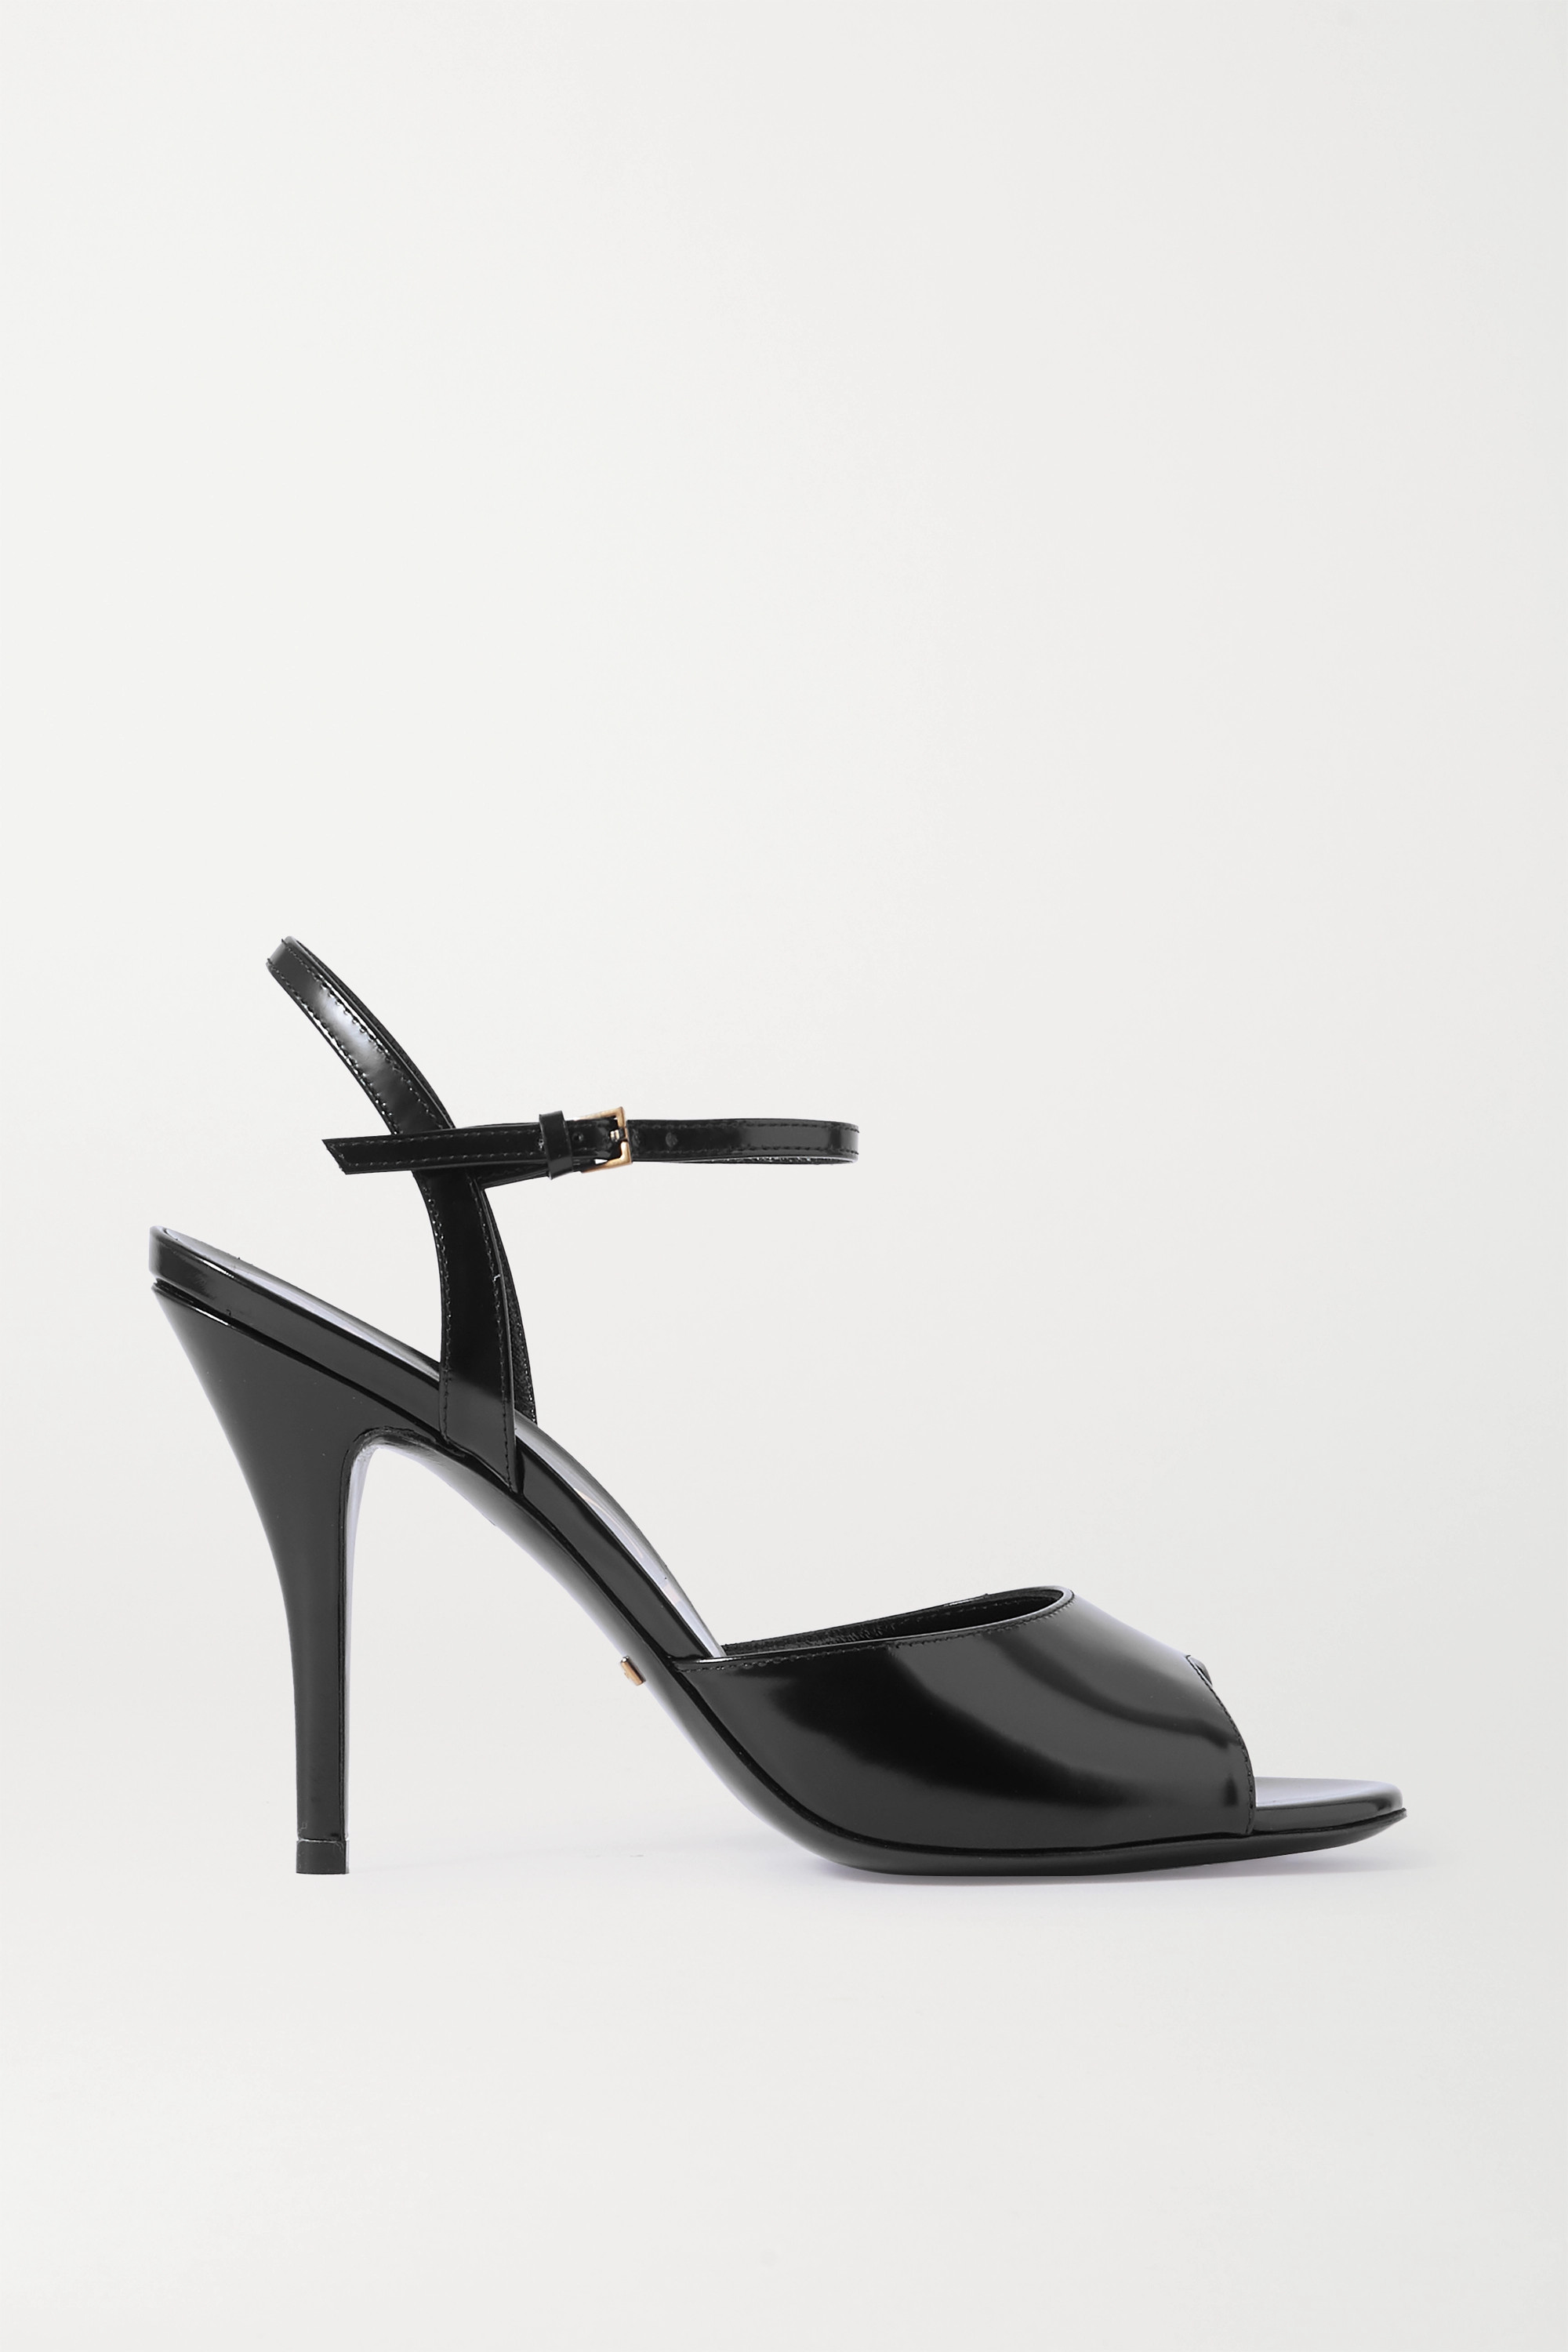 GUCCI Scarlet patent-leather sandals